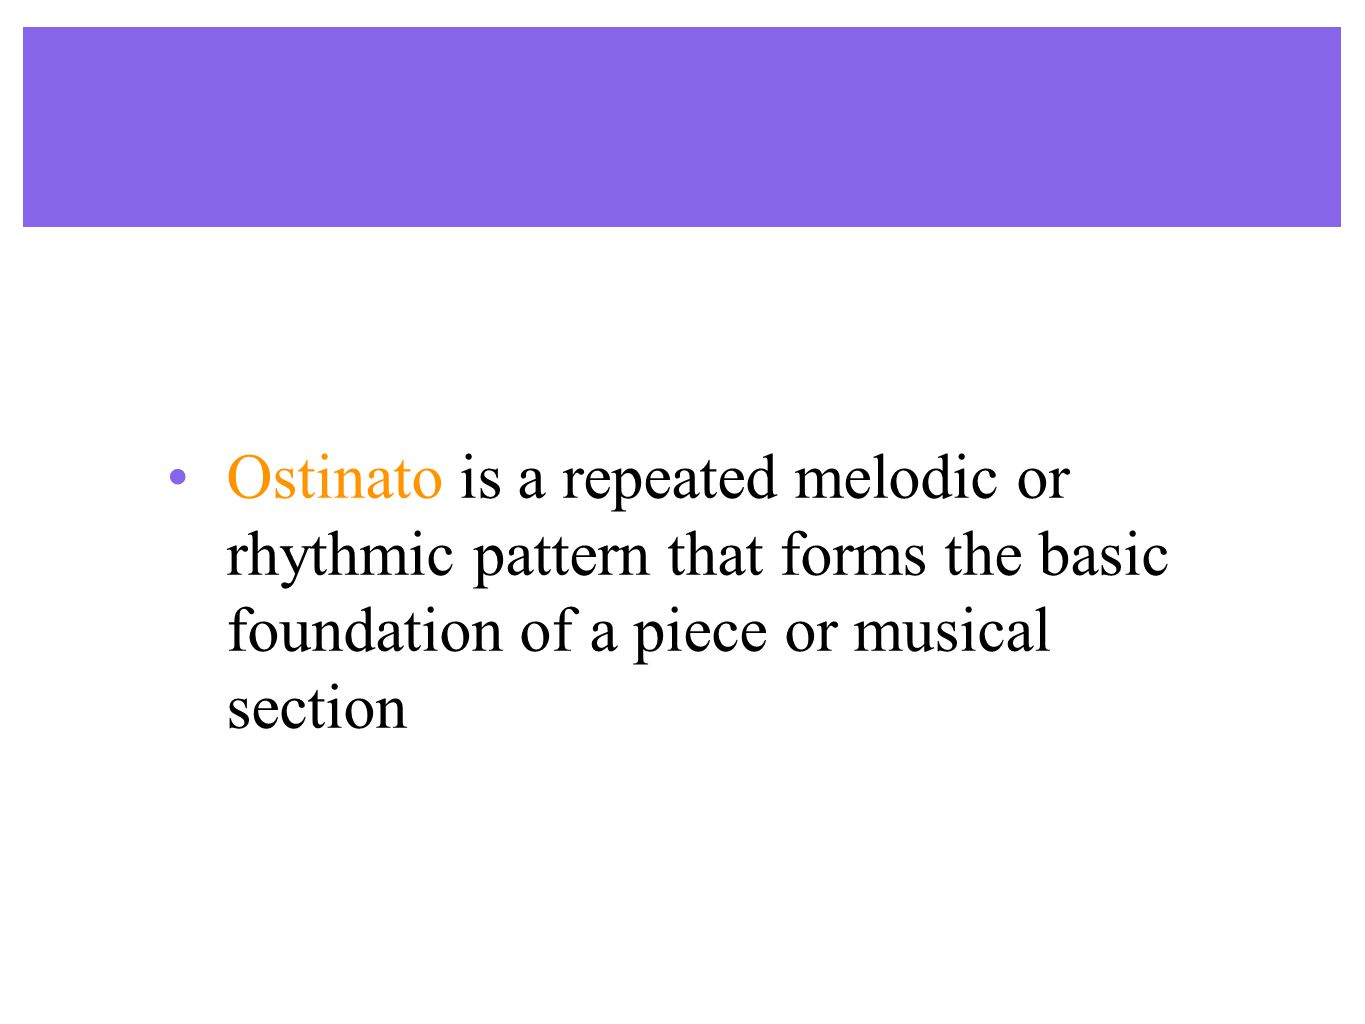 Ostinato is a repeated melodic or rhythmic pattern that forms the basic foundation of a piece or musical section